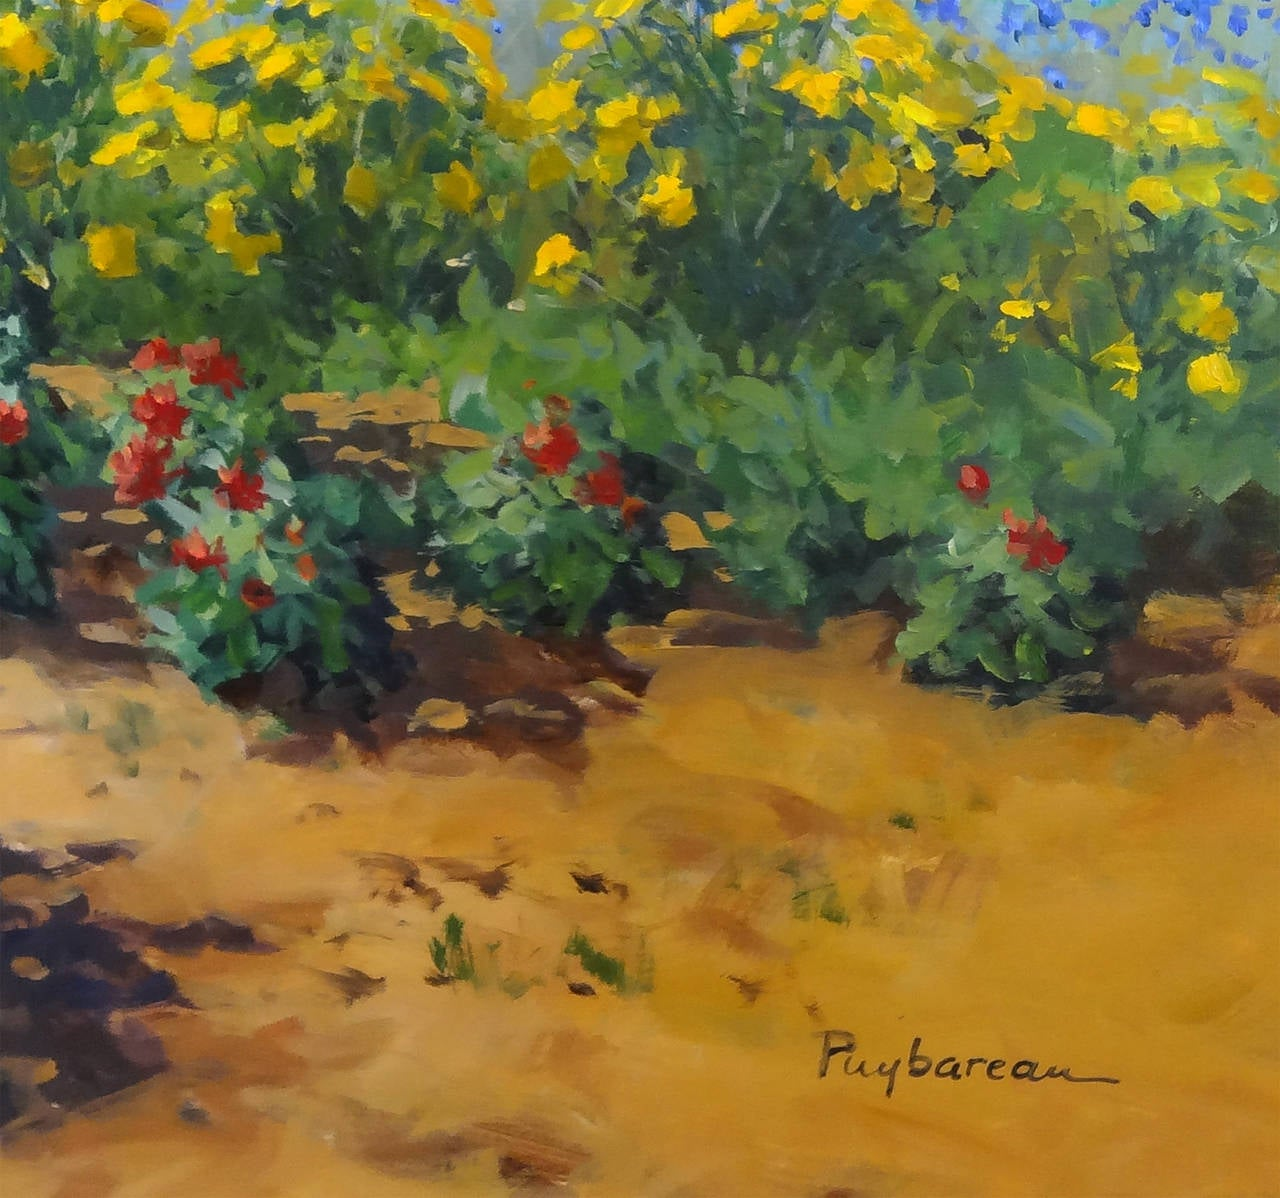 Annie puybareau la p pini re painting for sale at 1stdibs for Pepiniere